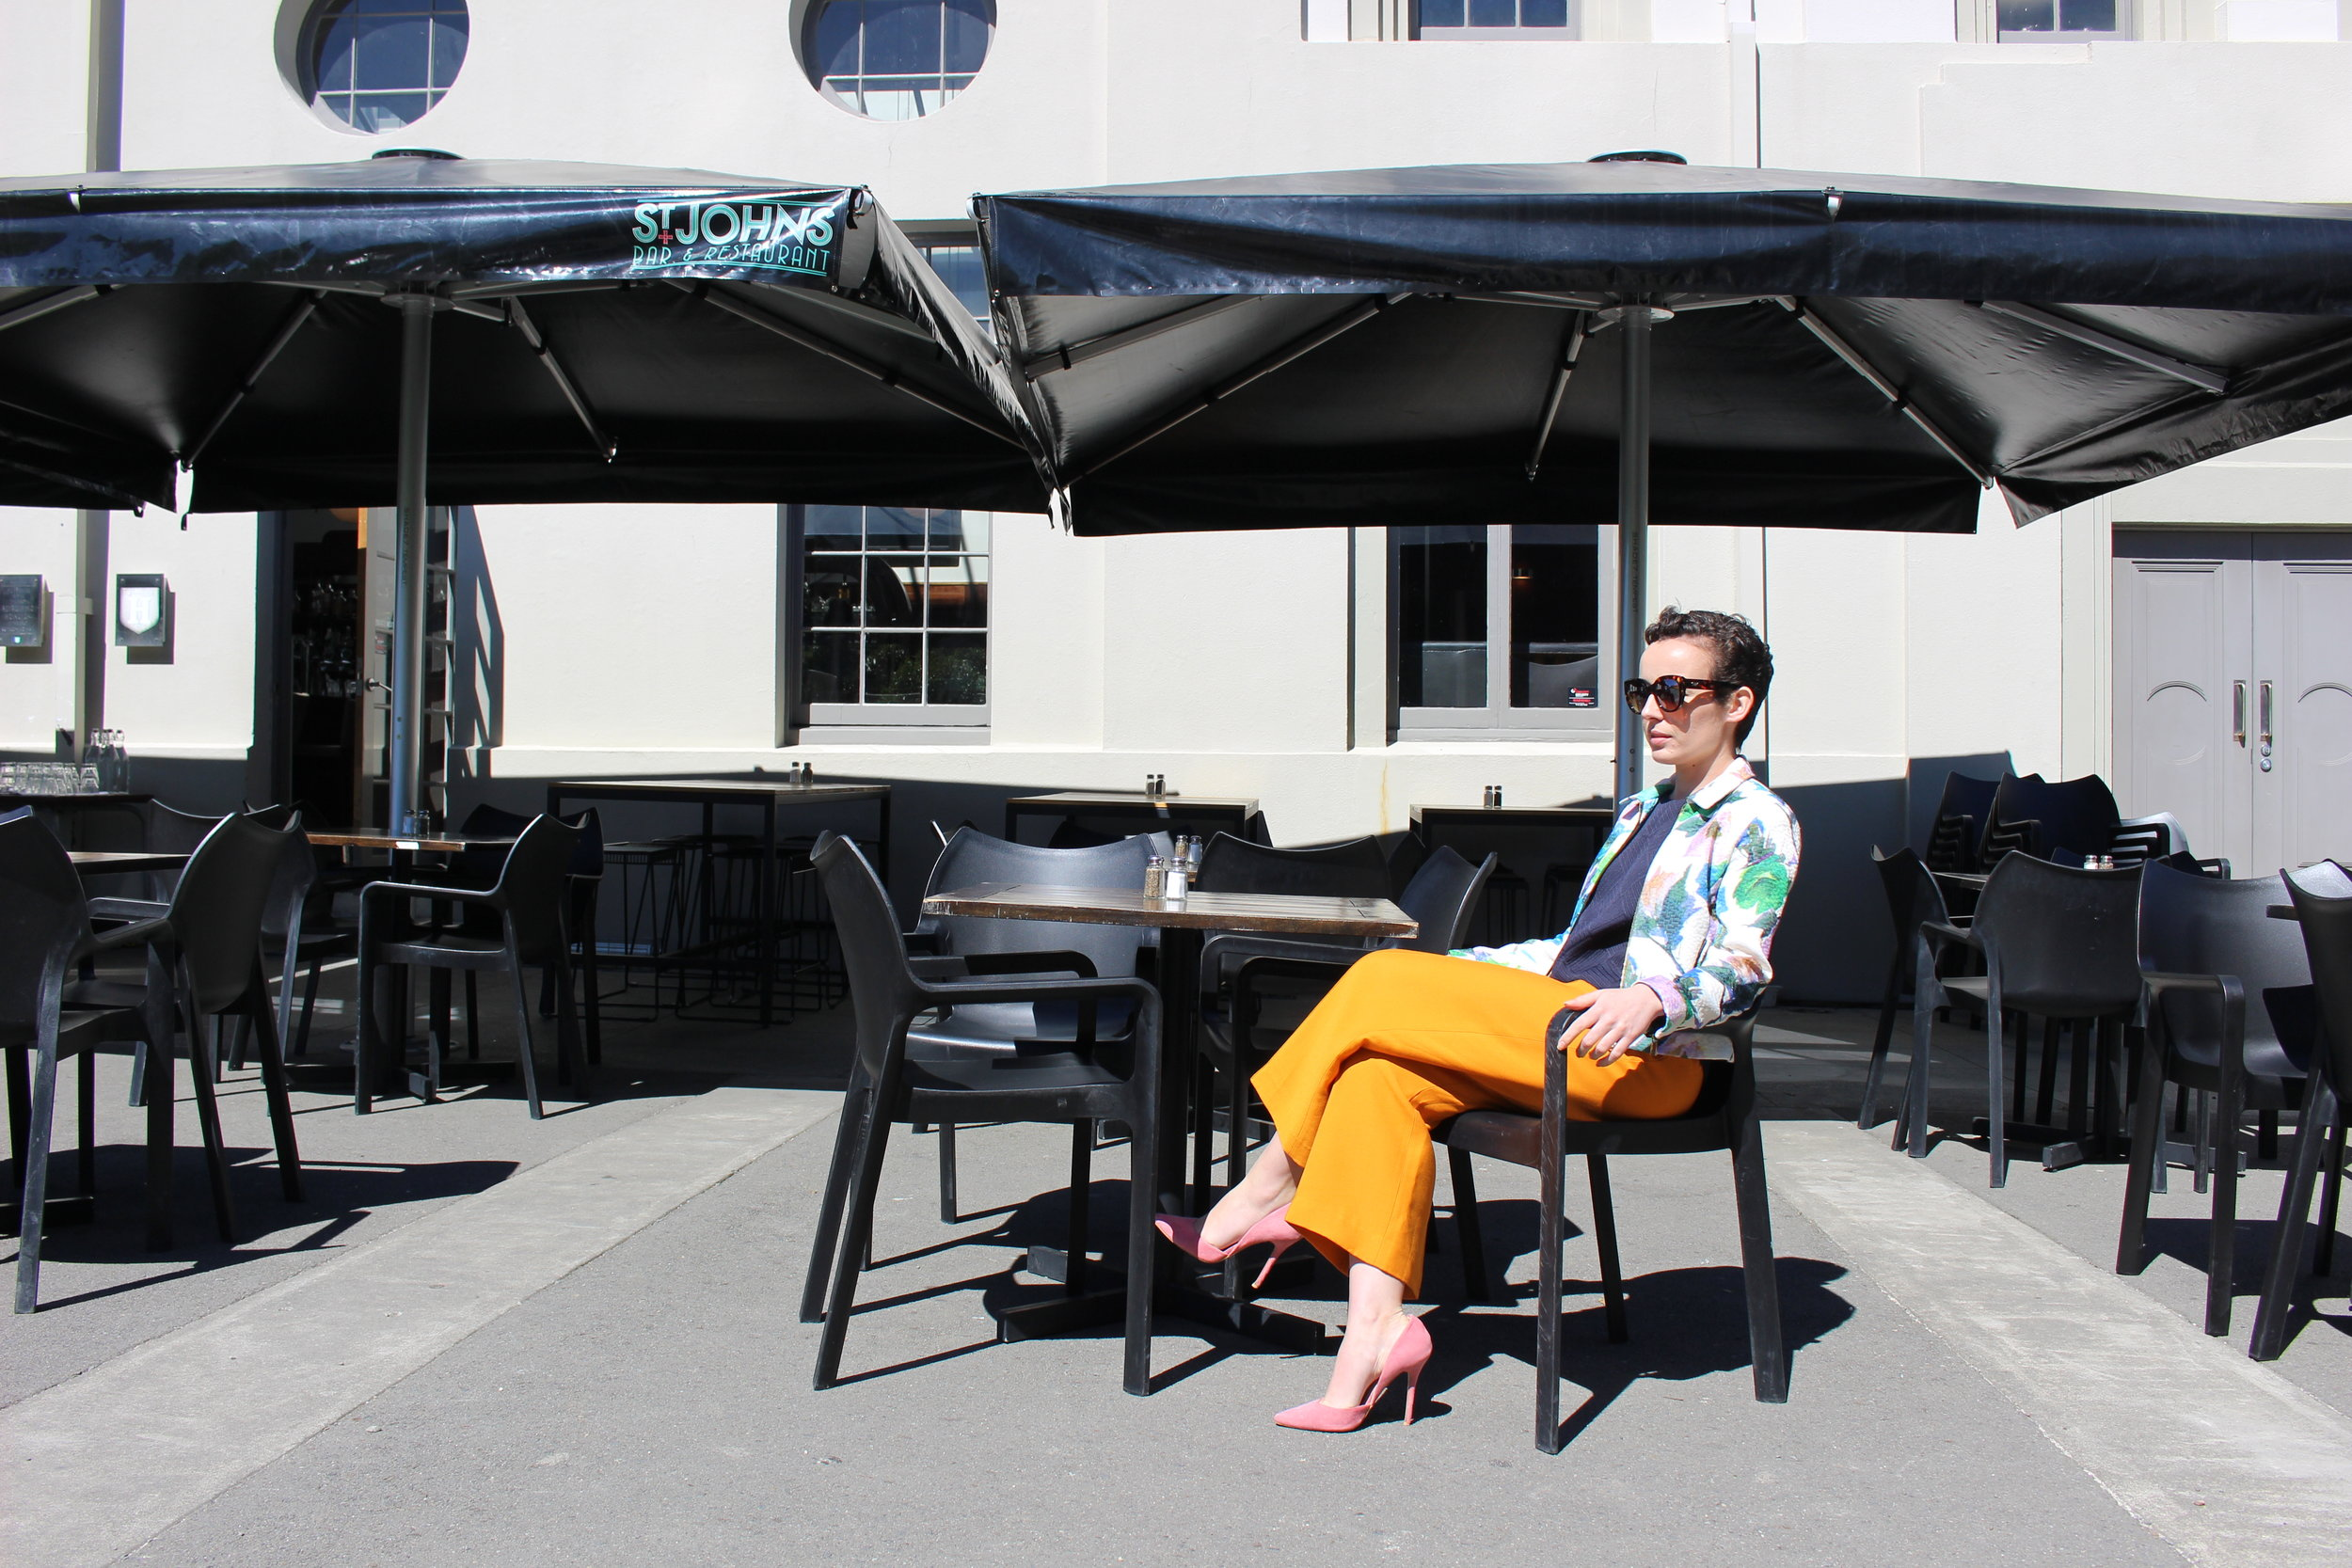 Waiting in vain for a cocktail half as colourful as my outfit